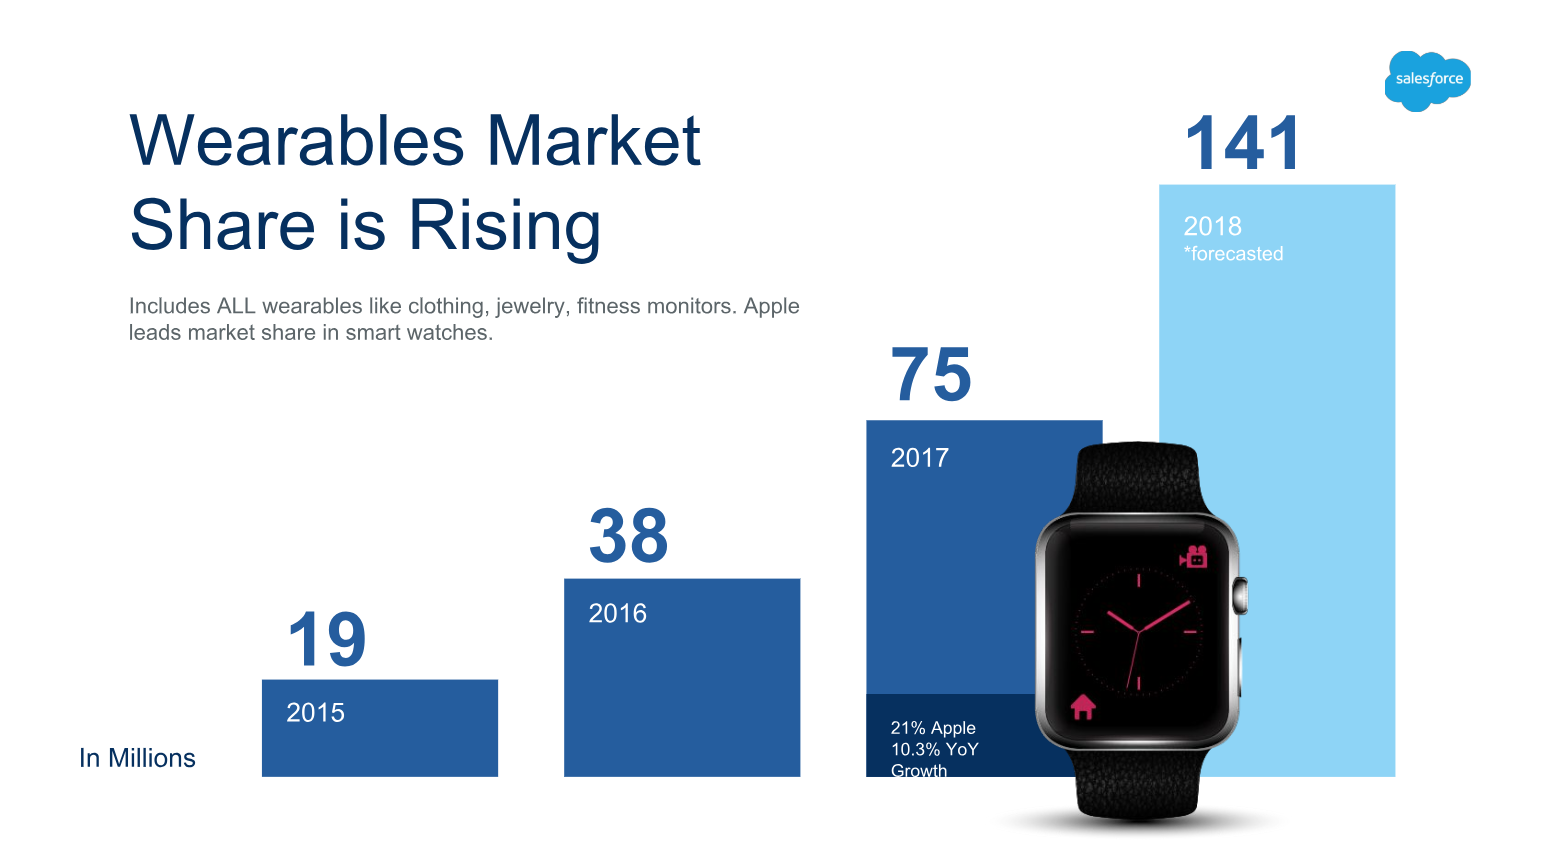 Wearables market share is rising.